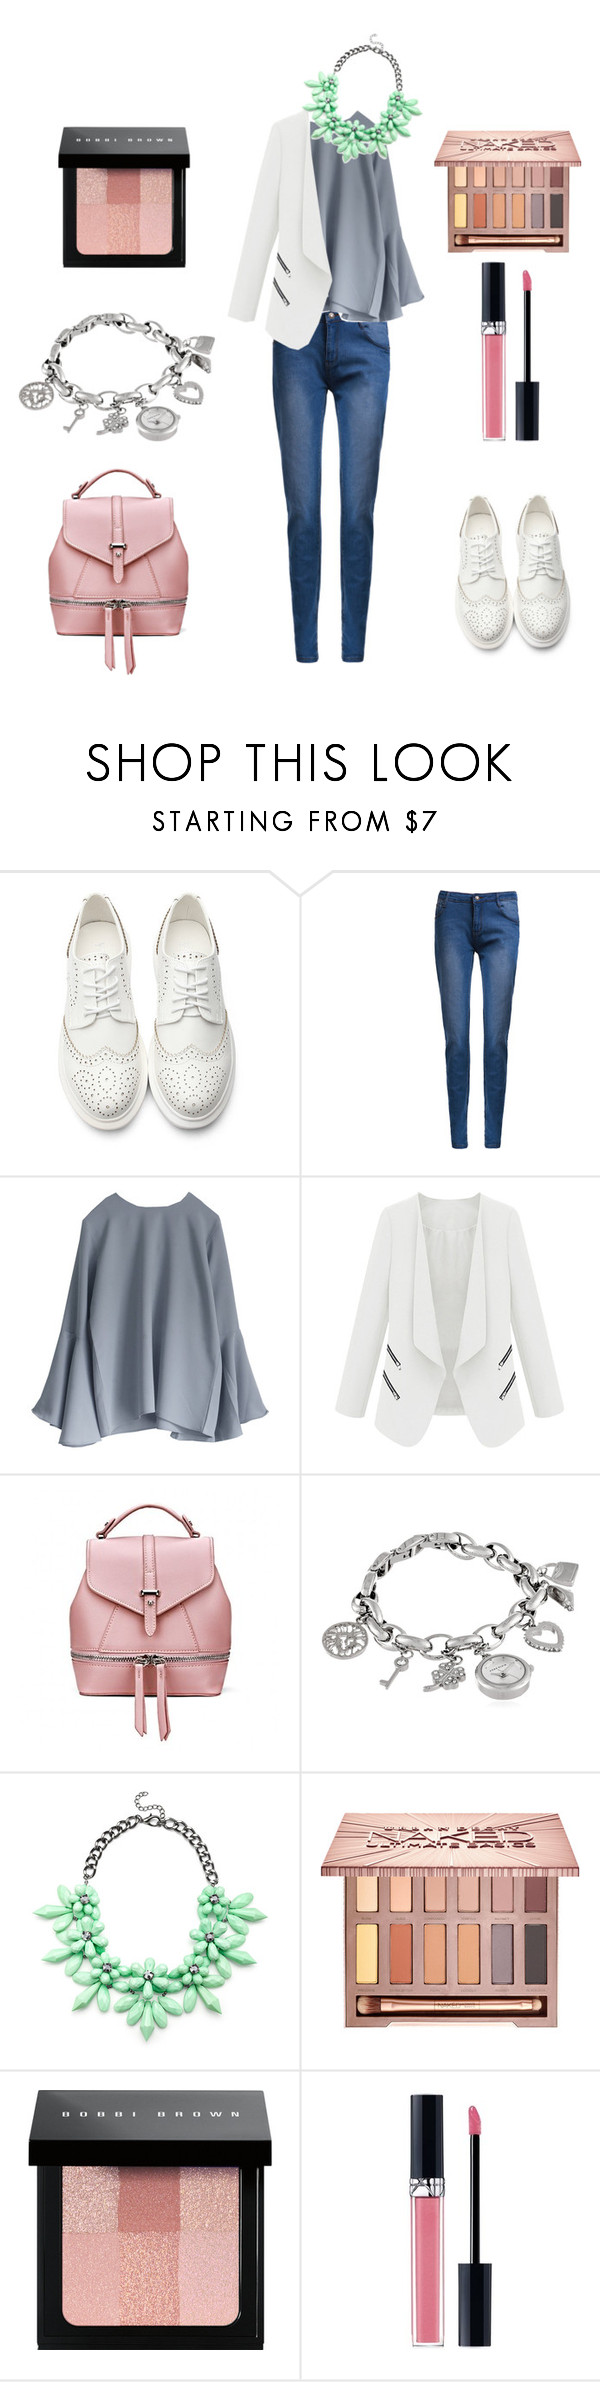 """""""Urban Chic"""" by keepfashion92 ❤ liked on Polyvore featuring Anne Klein, Slate & Willow, Urban Decay, Bobbi Brown Cosmetics, Christian Dior and urban"""